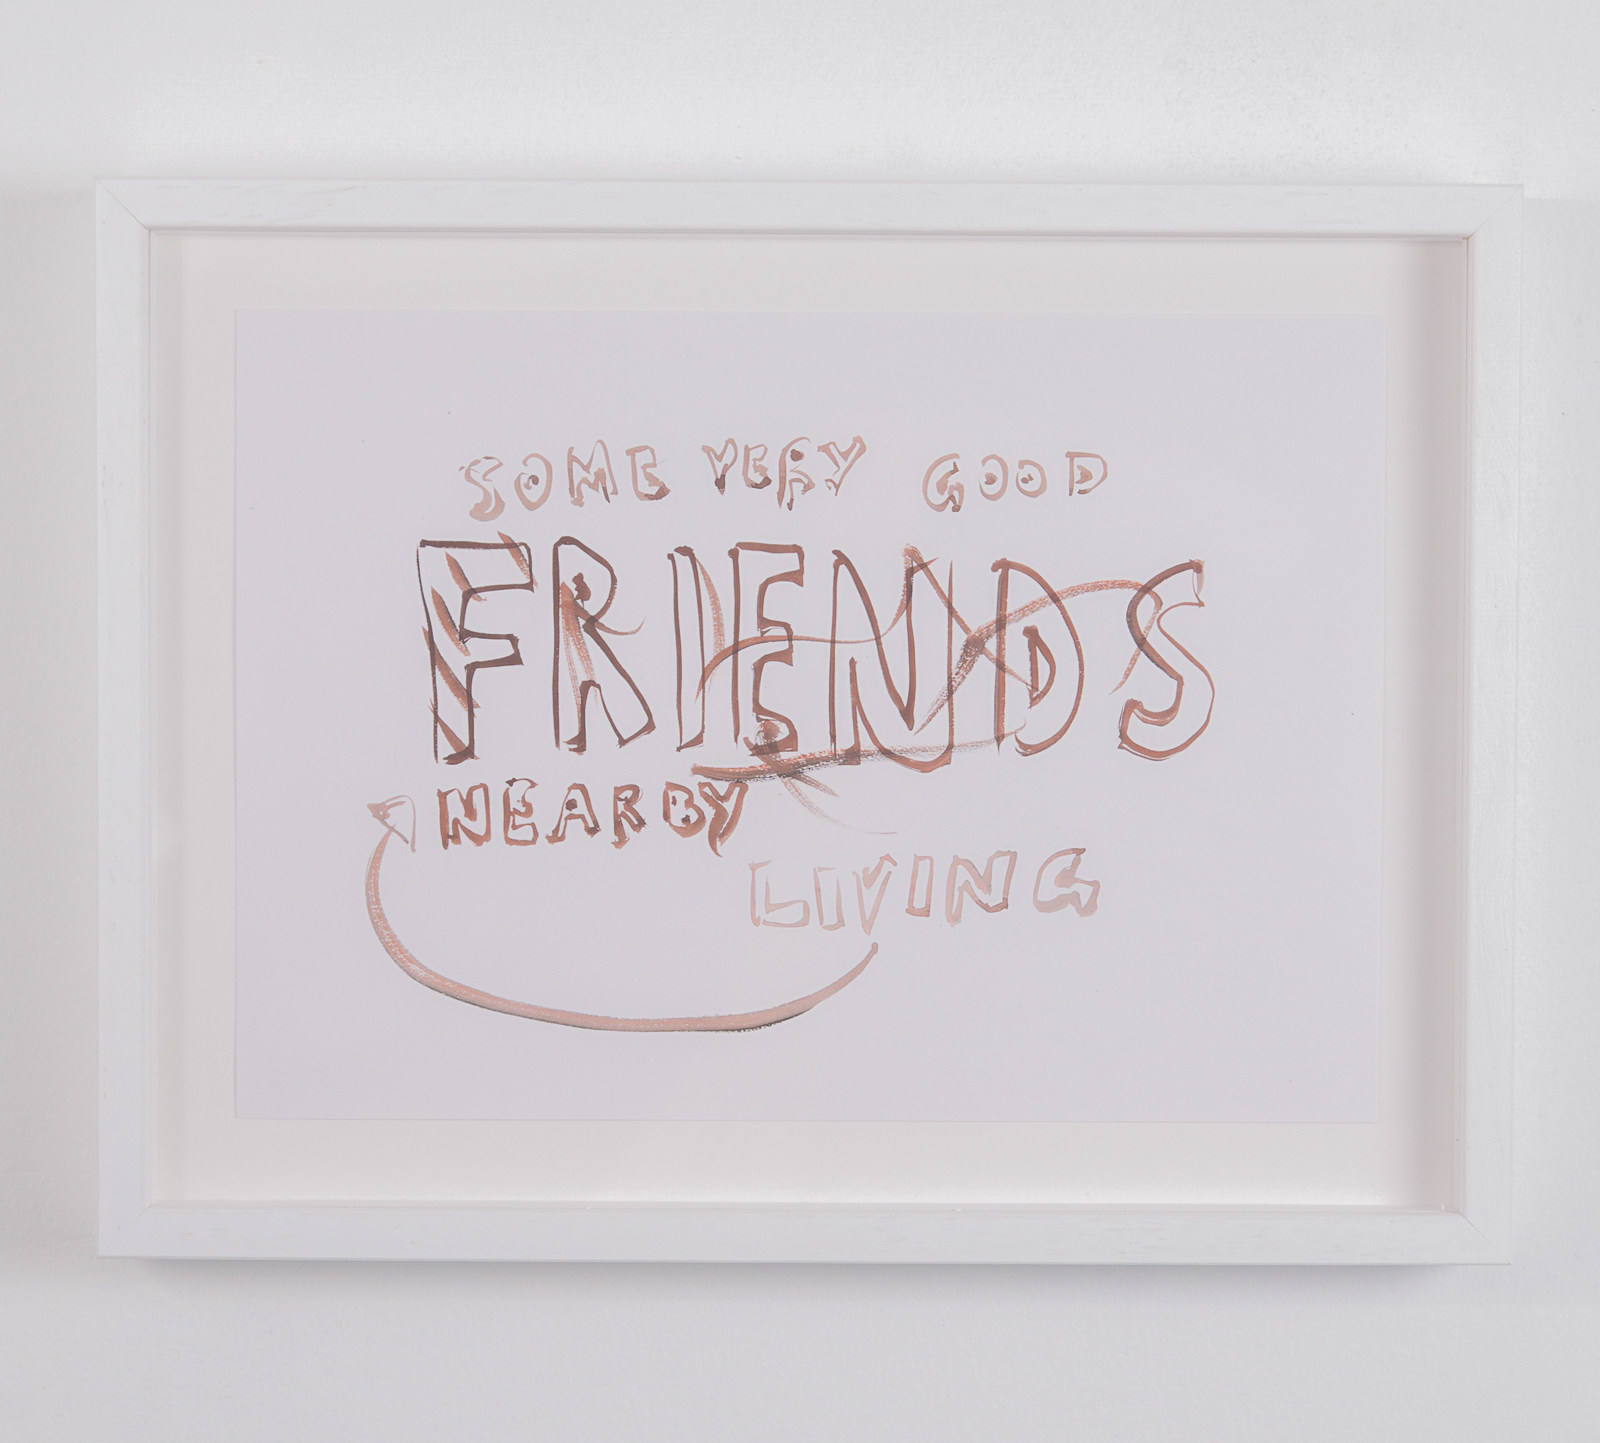 Tim Etchells, Some Very Good Friends, 2020. Tempera on archival paper. 21 x 29.7 cm